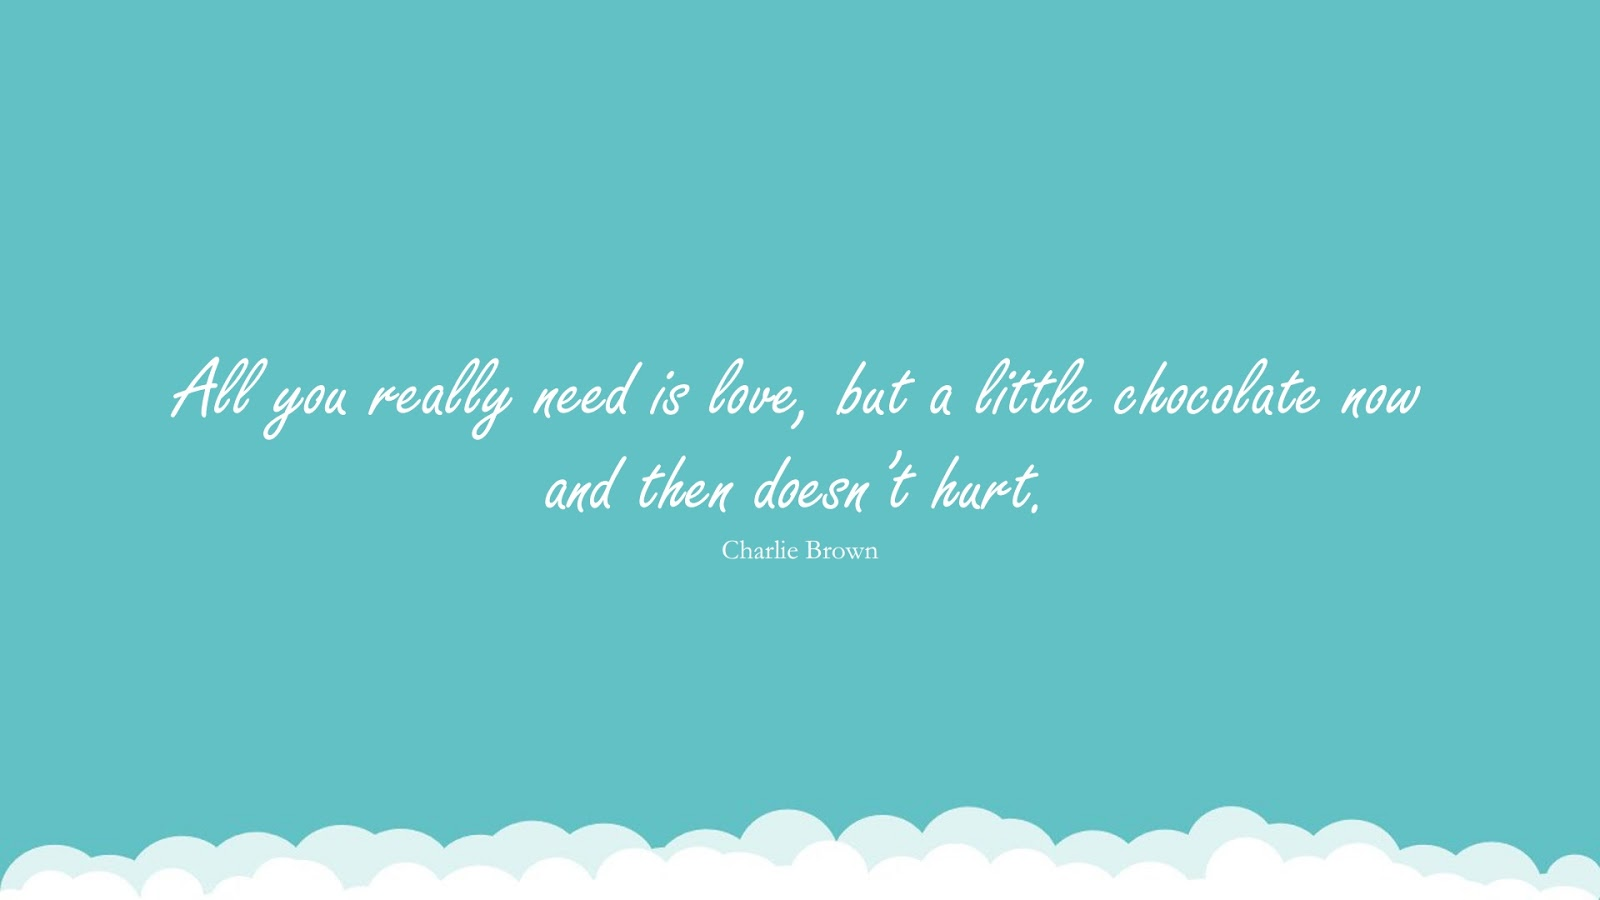 All you really need is love, but a little chocolate now and then doesn't hurt. (Charlie Brown);  #PositiveQuotes